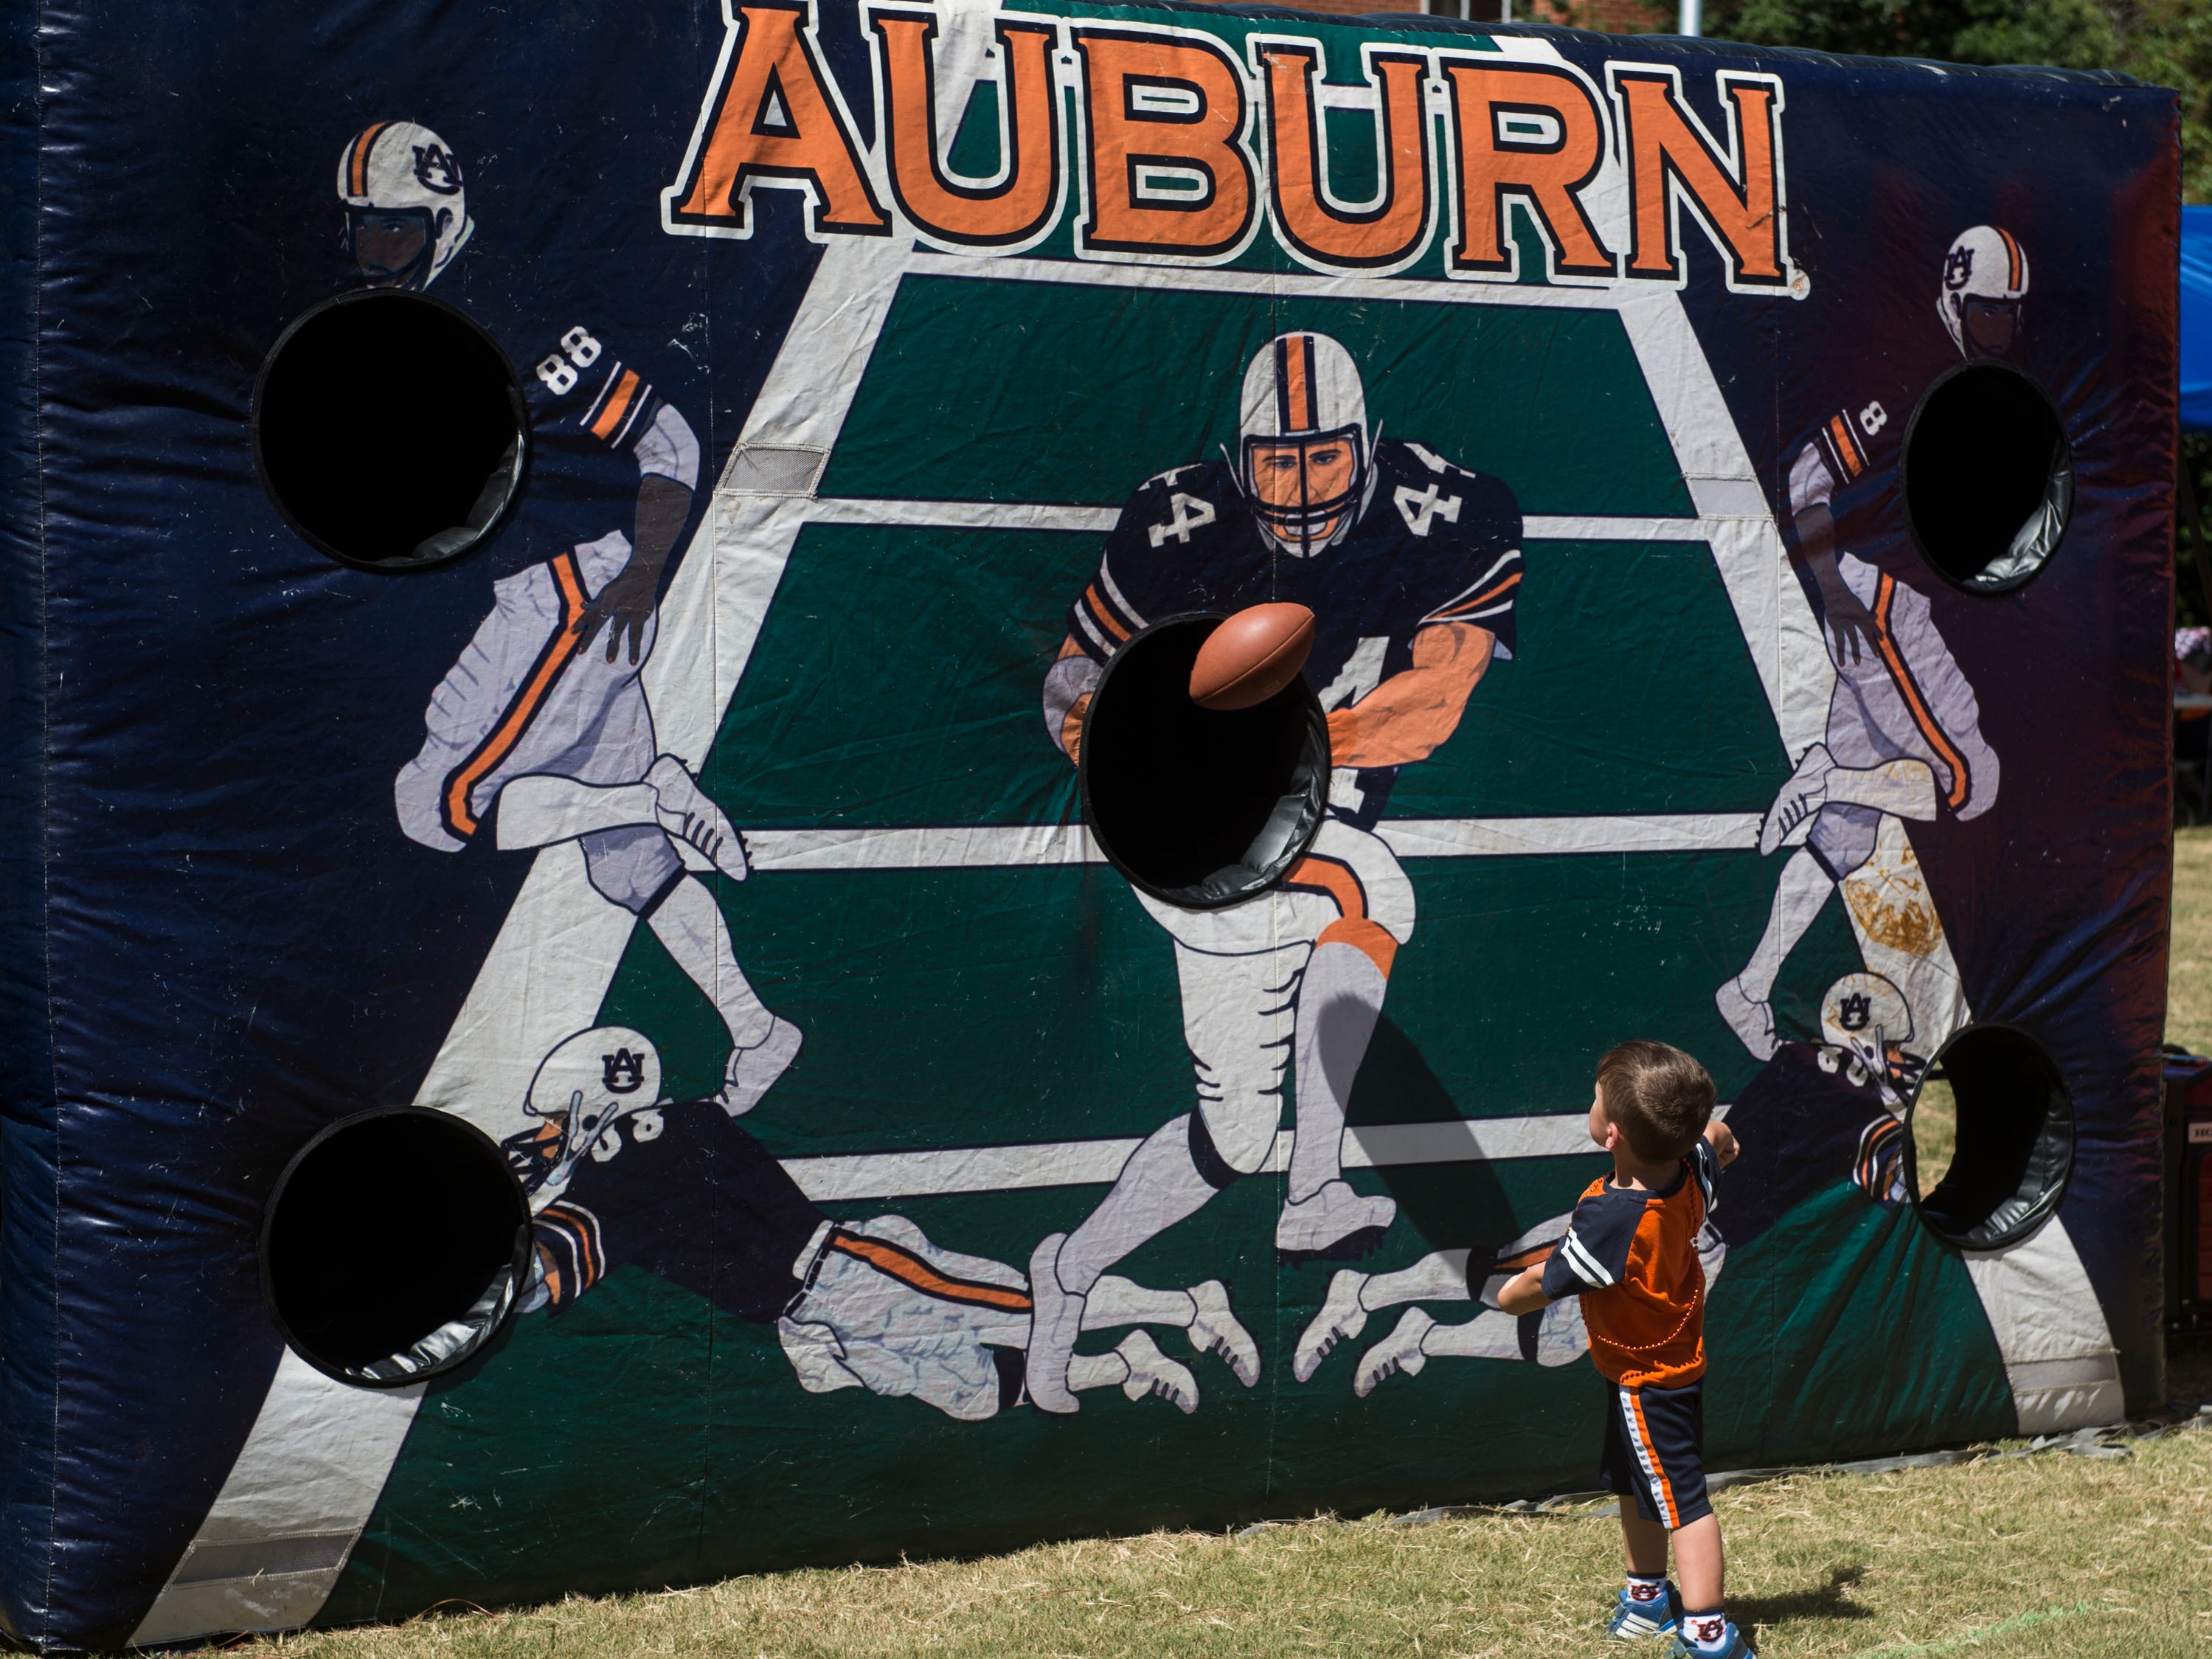 Asher Stevenson, 3, plays a game at a tailgate outside Jordan-Hare Stadium in Auburn, Ala., on Saturday, Sept. 15, 2018.